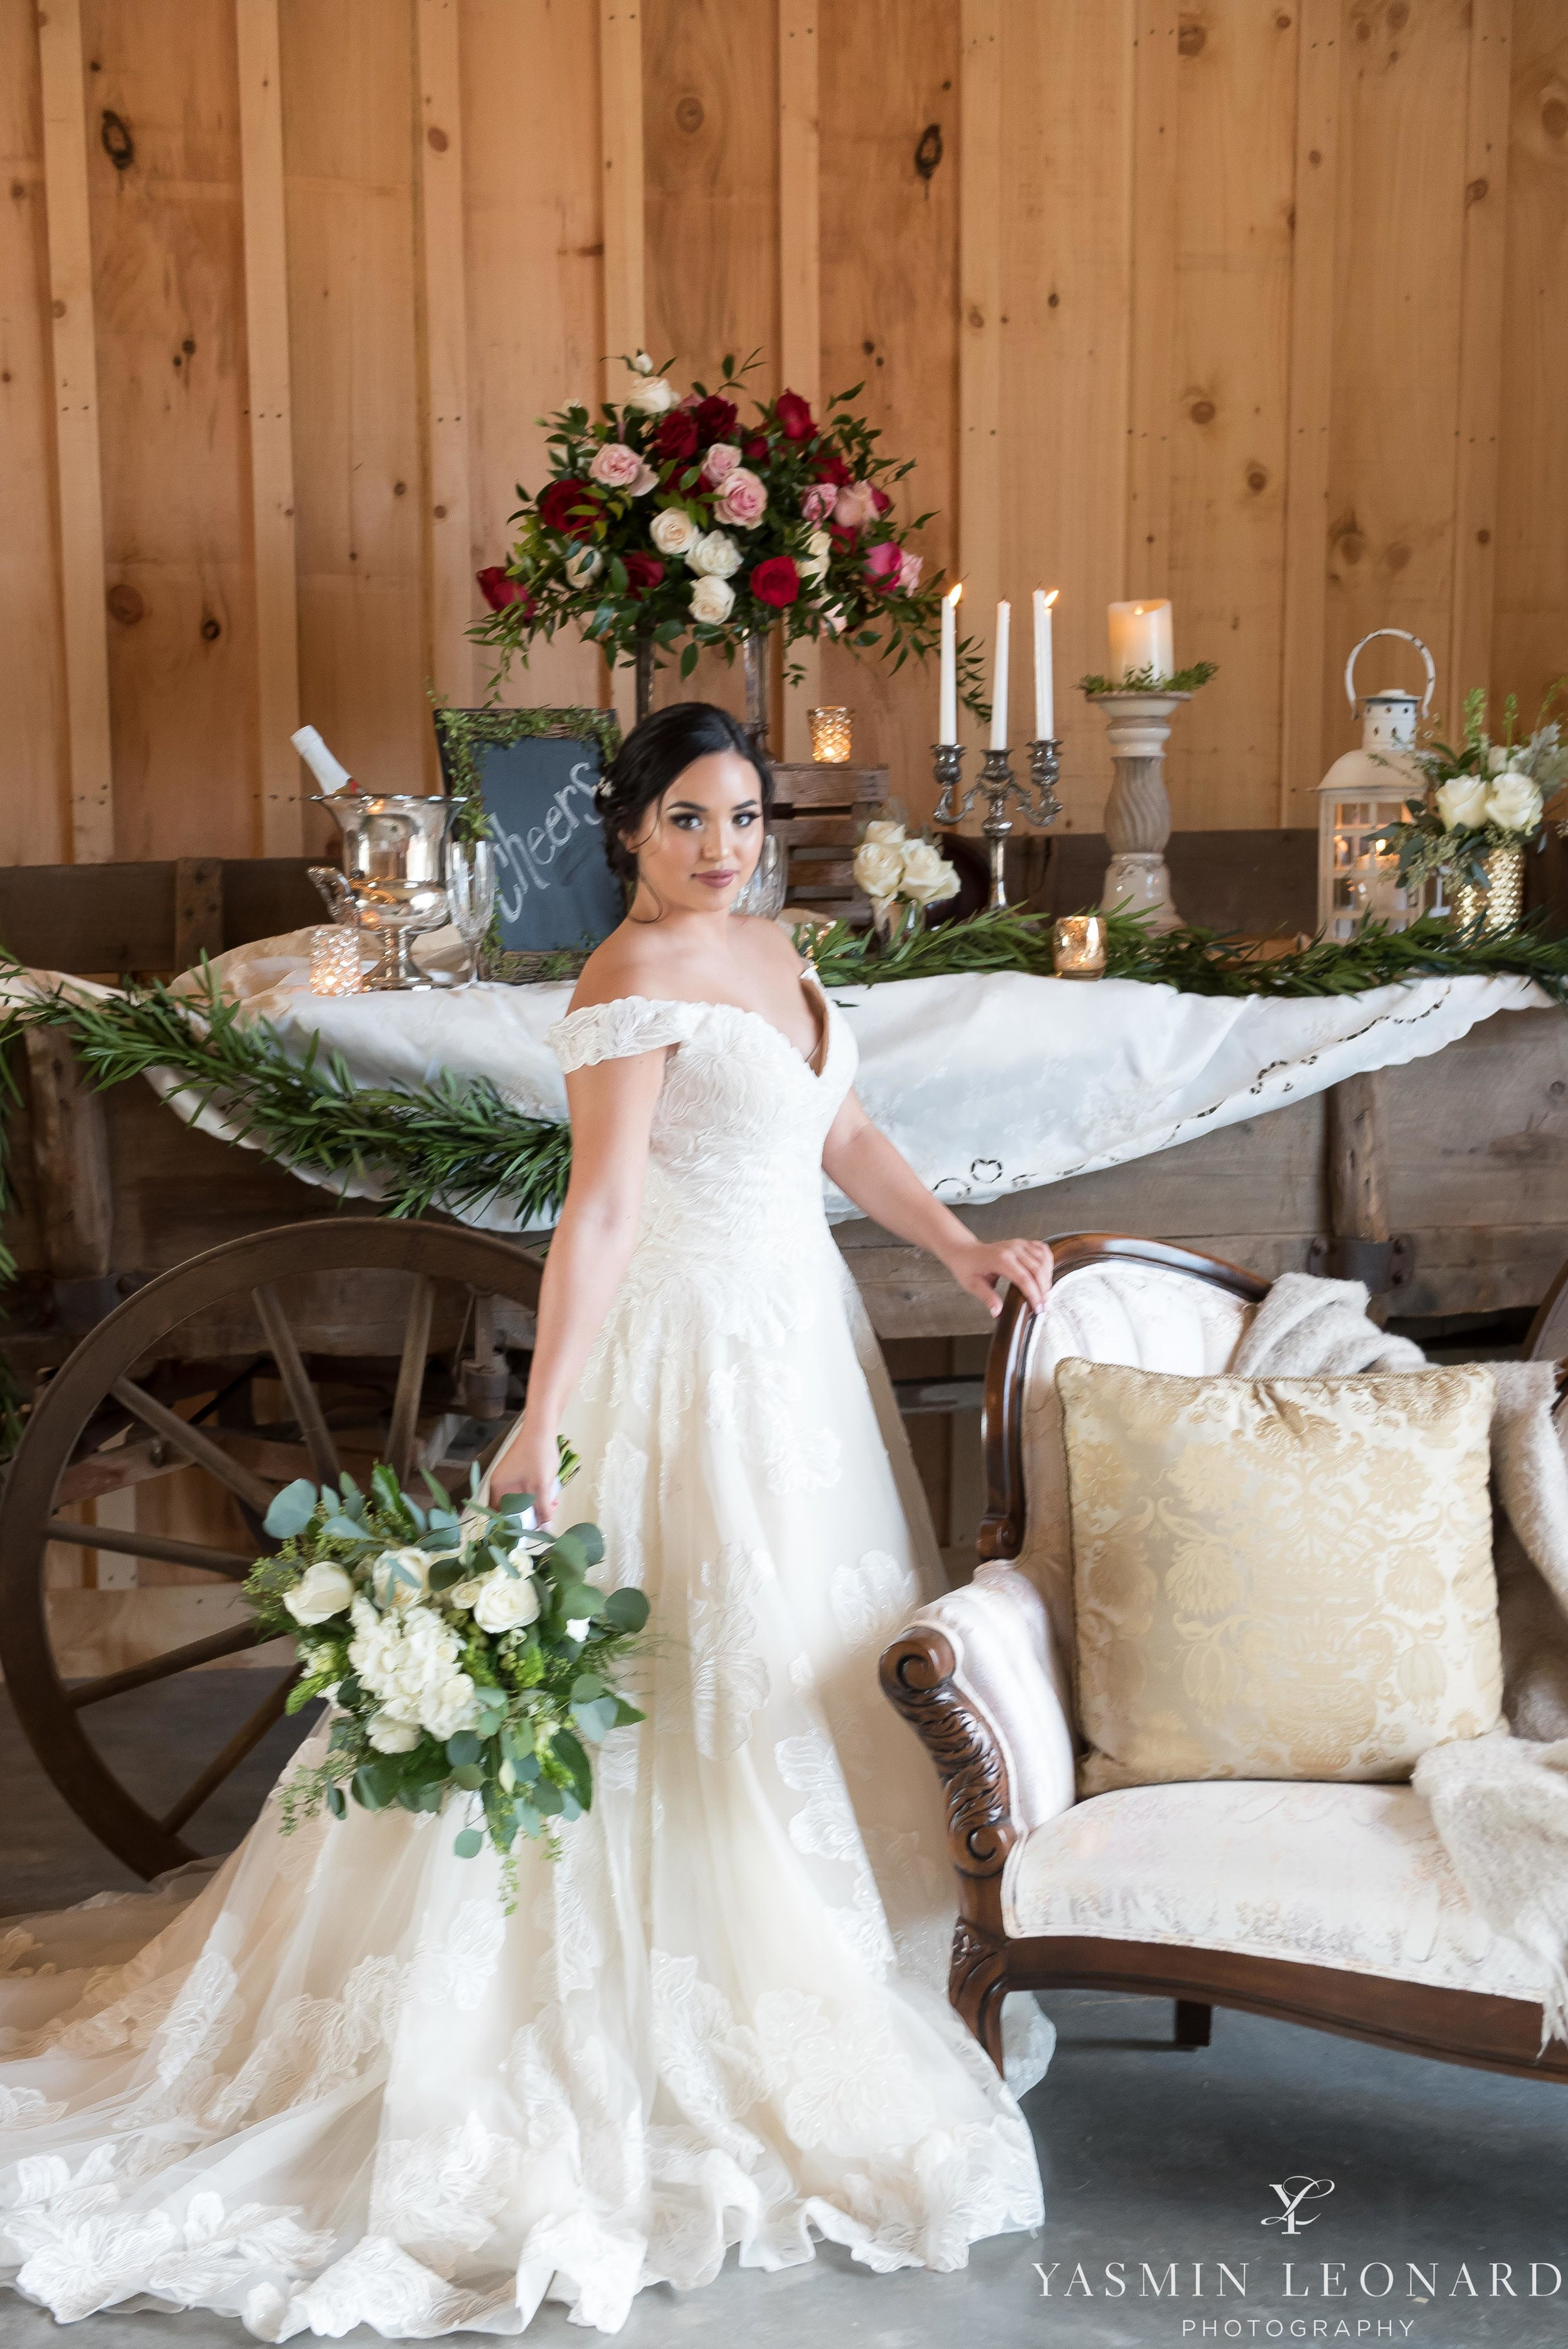 Old Homeplace Vineyard - Grits and Glitter - Dashing Dames Bridal Boutique - Just Priceless - Yasmin Leonard Photography - High Point Weddings - NC Weddings - NC Wedding Venues - High Point Jewelers - NC Wines - NC Vineyards - Cupcake Cuties-42.jpg